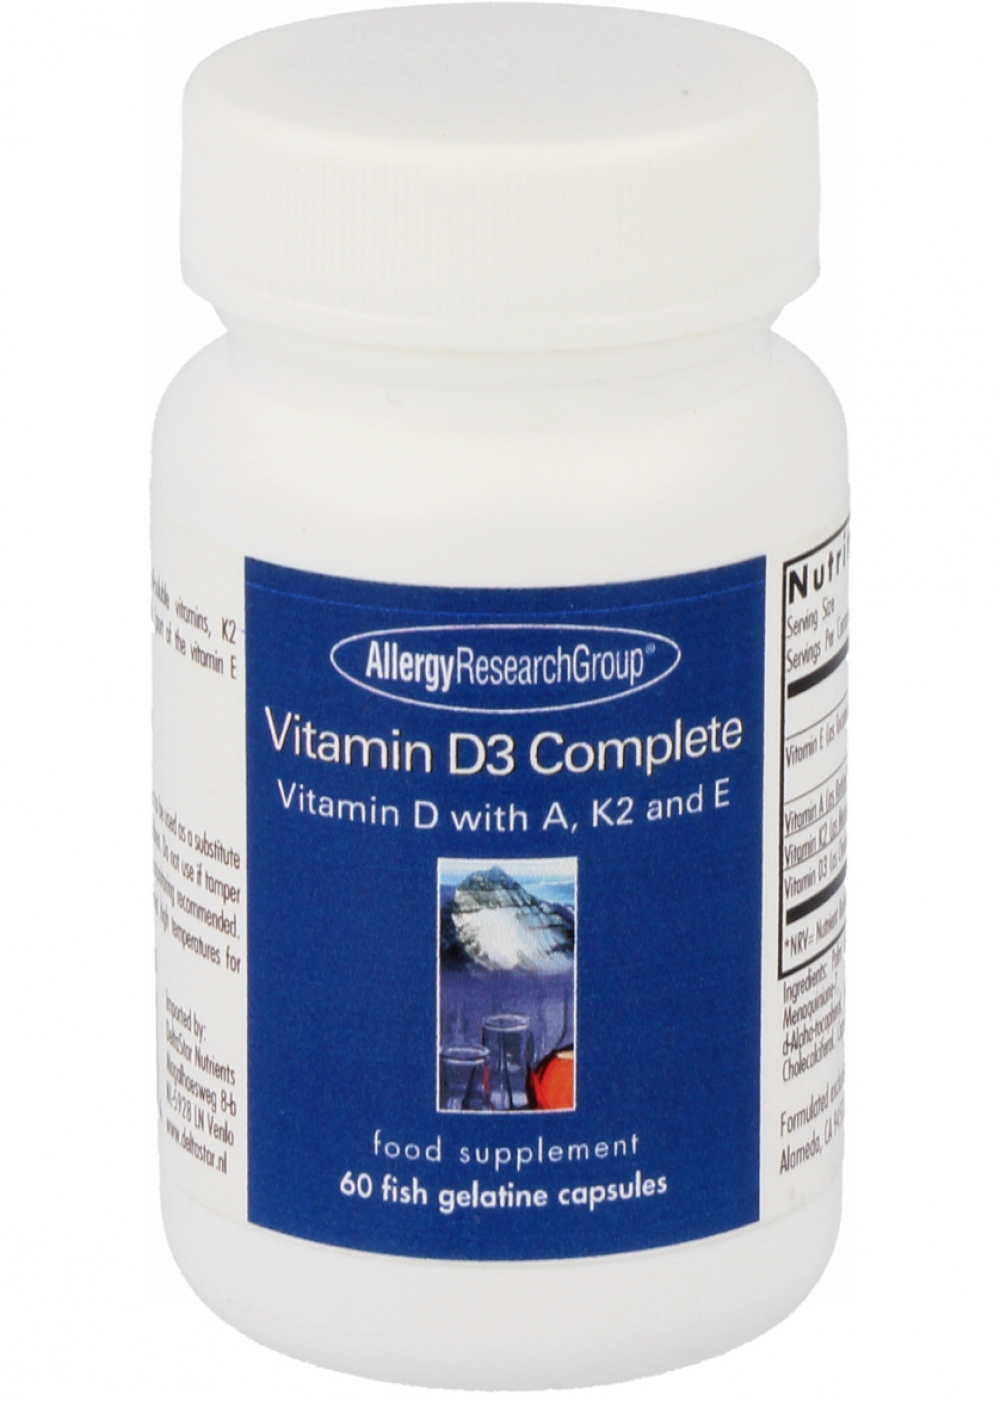 Allergy Research Group Vitamin D3 Complete 120 Fischgelatine-Kapseln